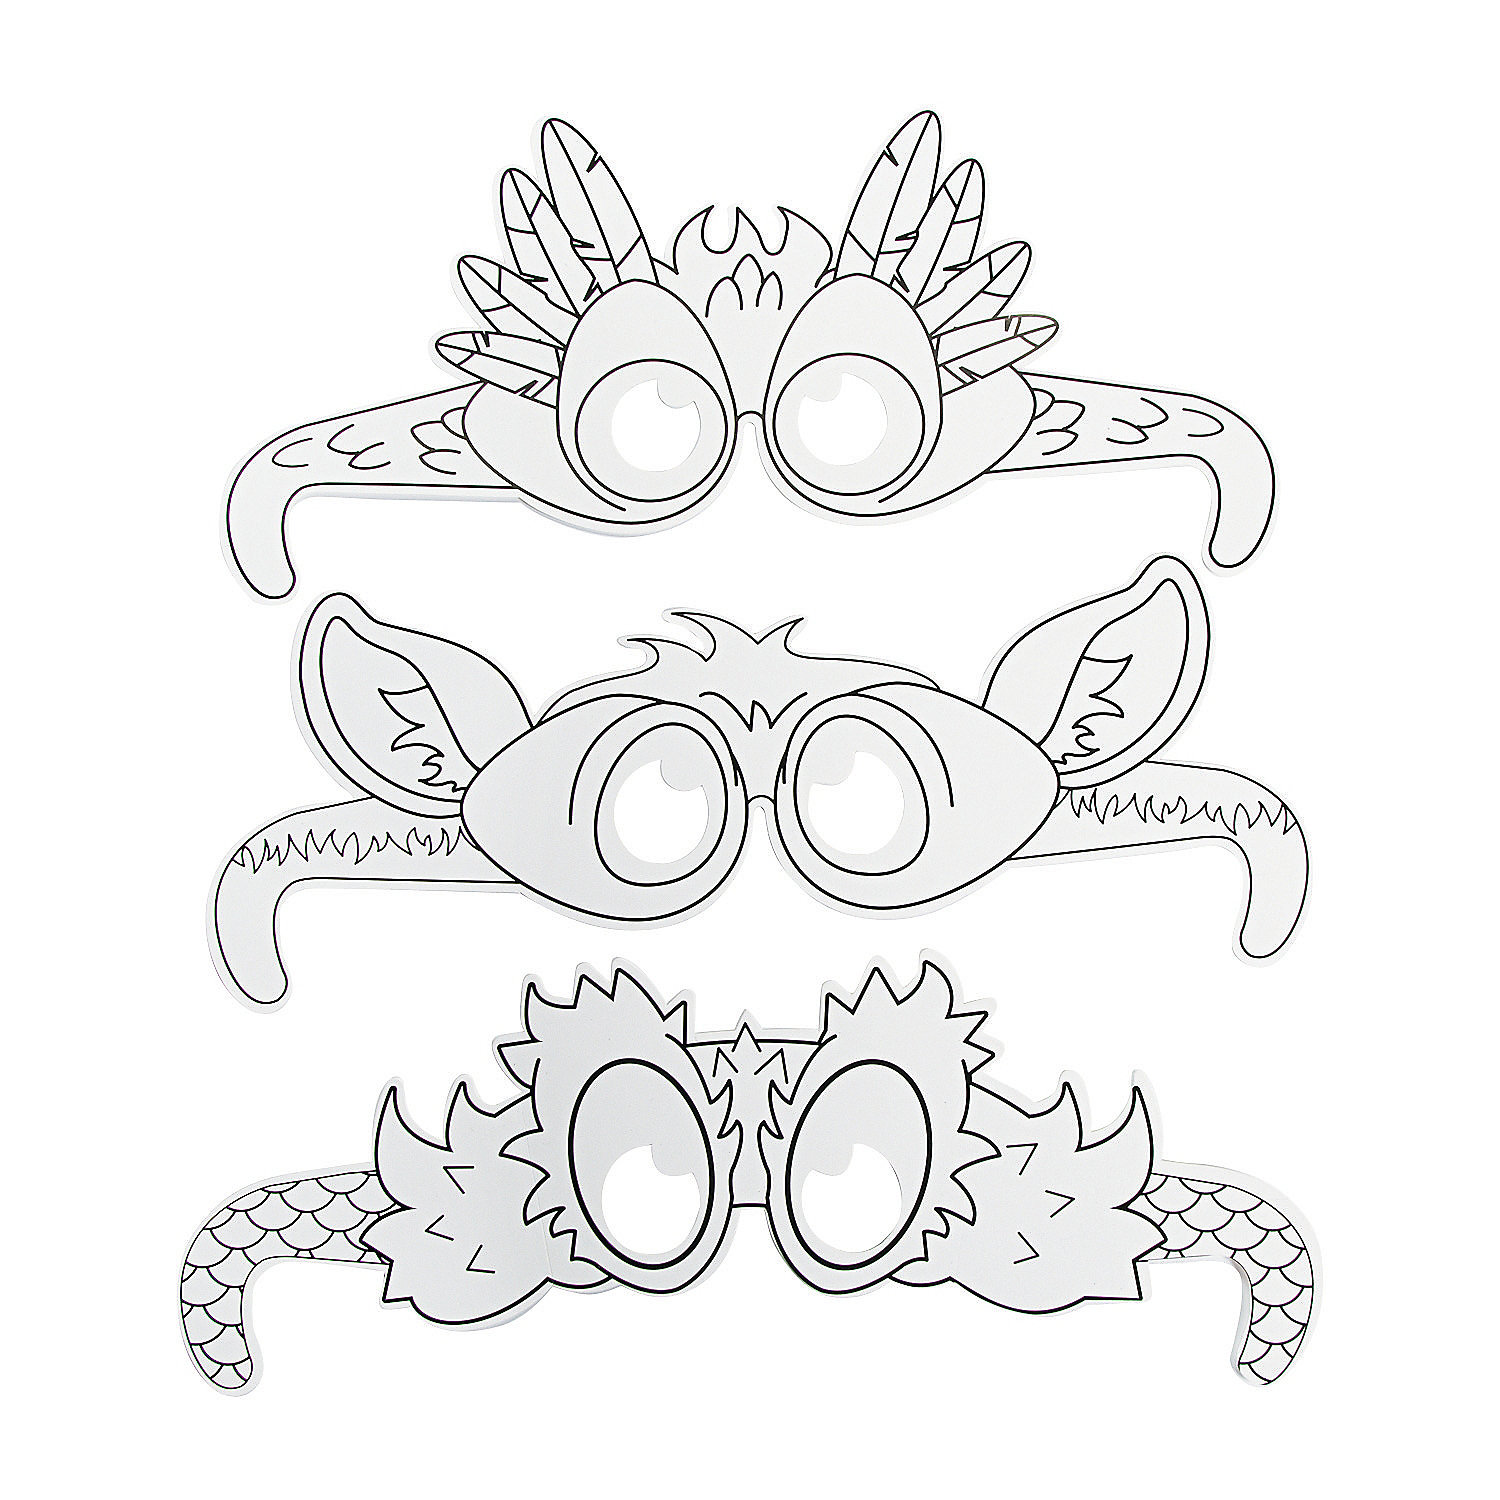 Color Your Own Wild Wonders VBS Animal Glasses, Coloring